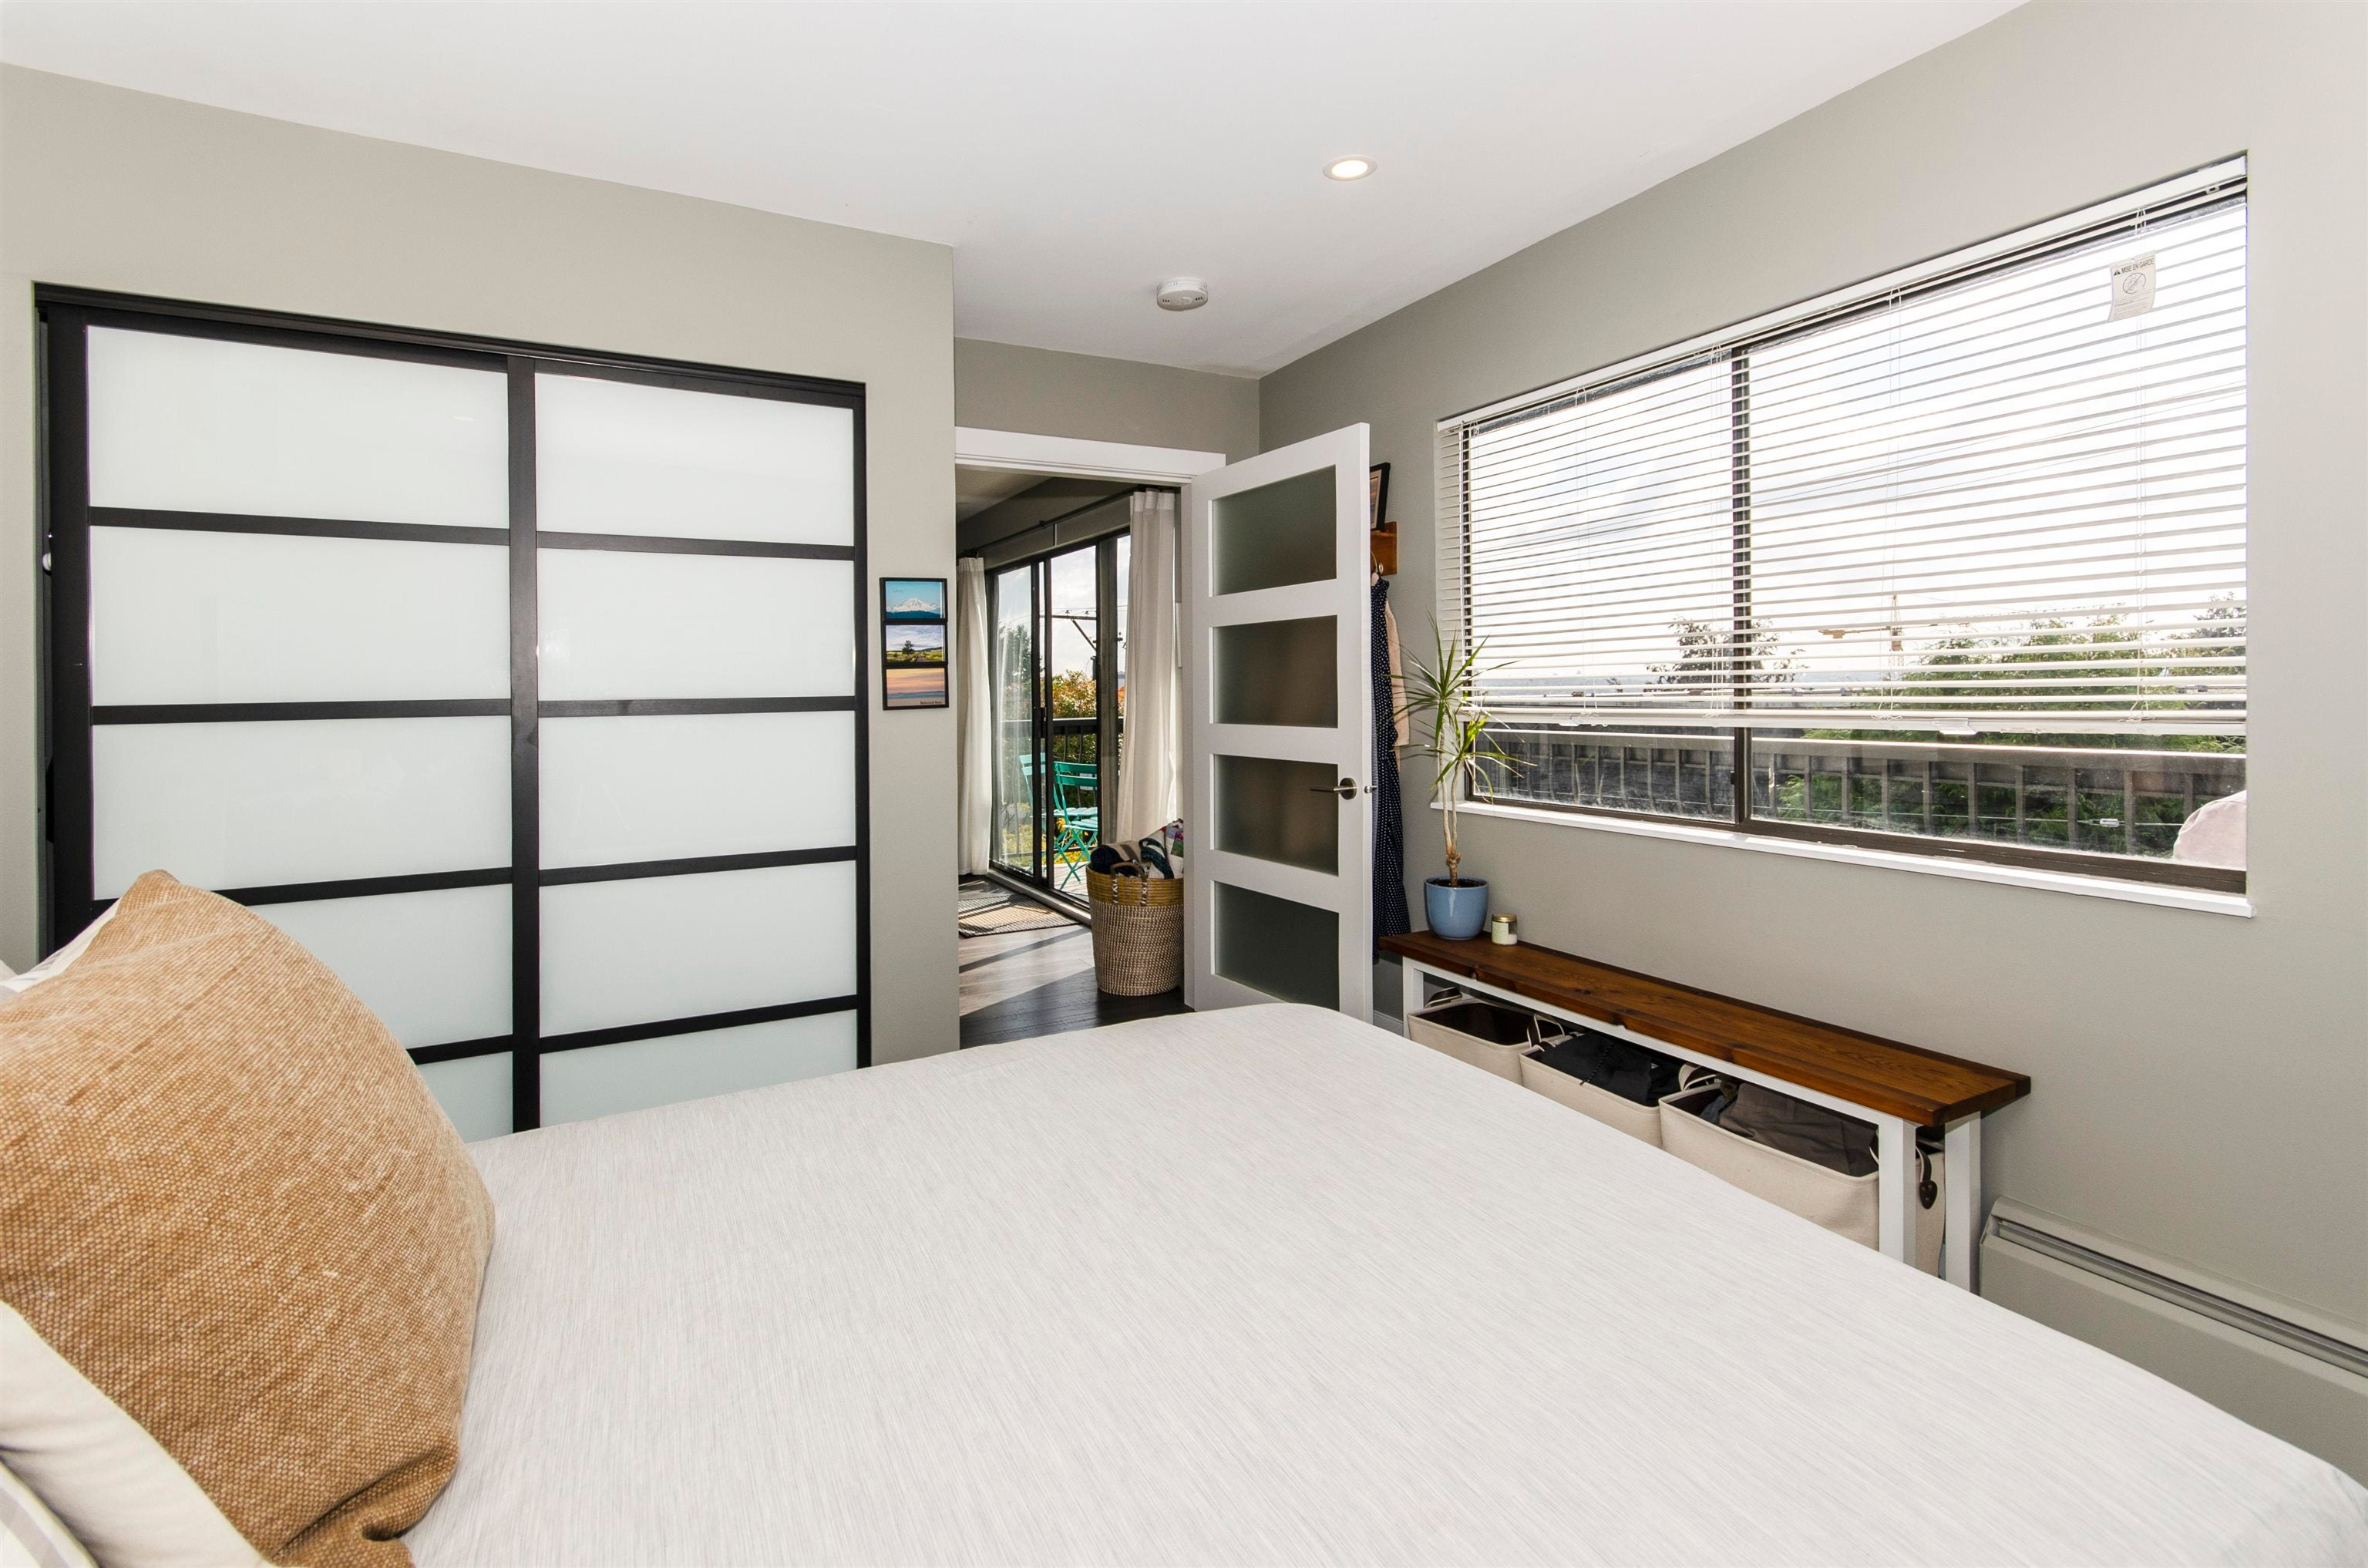 206 175 E 5TH STREET - Lower Lonsdale Apartment/Condo for sale, 2 Bedrooms (R2624759) - #12